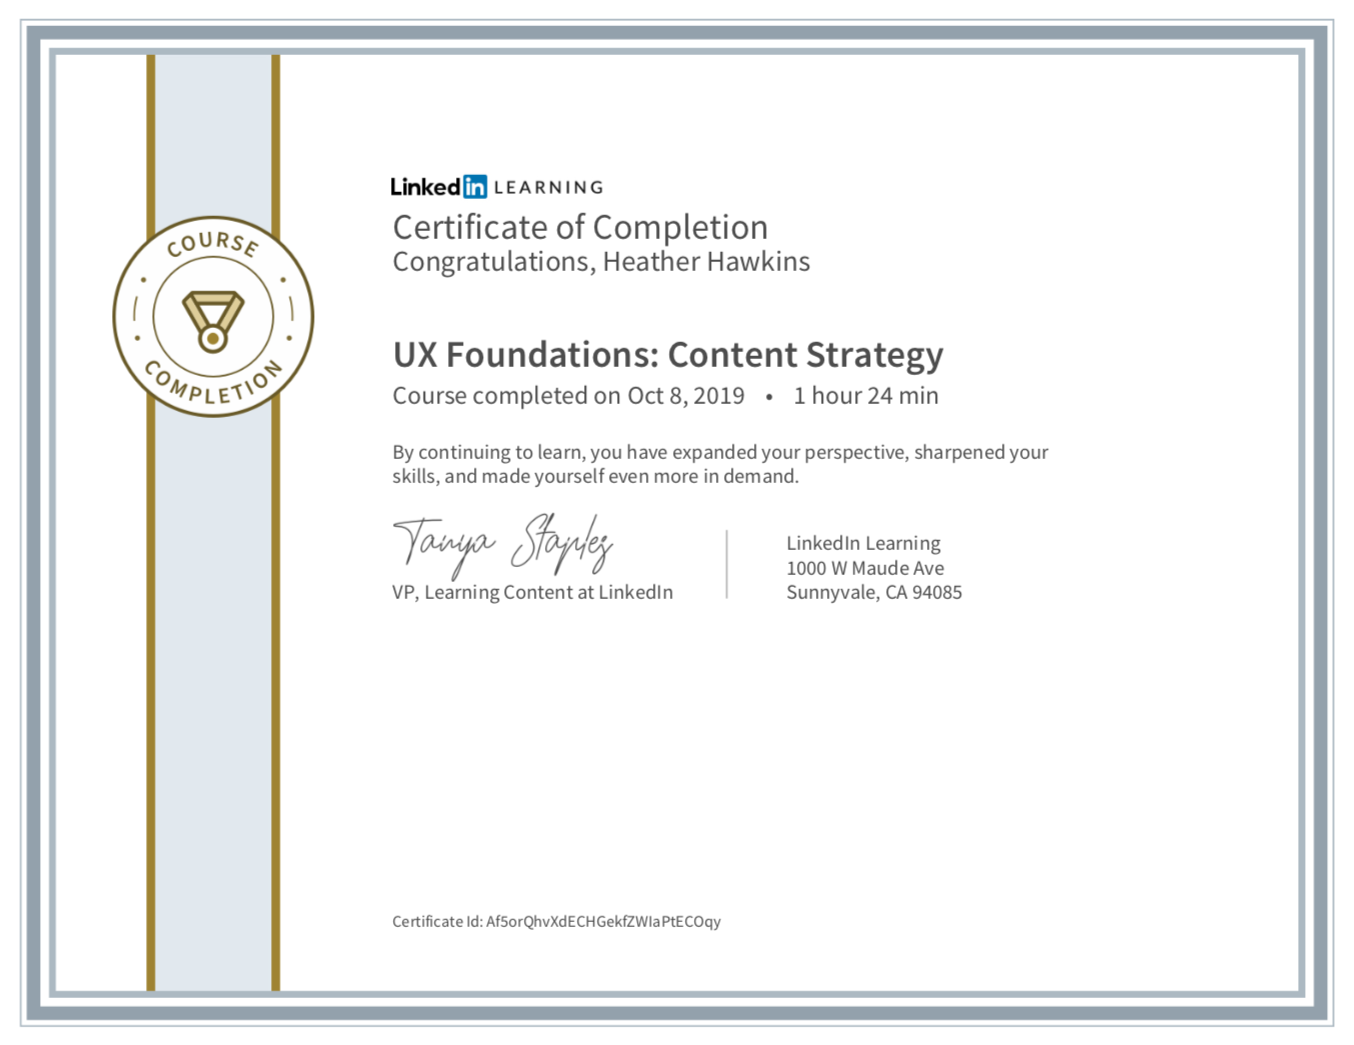 Certificate of completion from LinkedIn Learning. UX Foundations: Content Strategy.